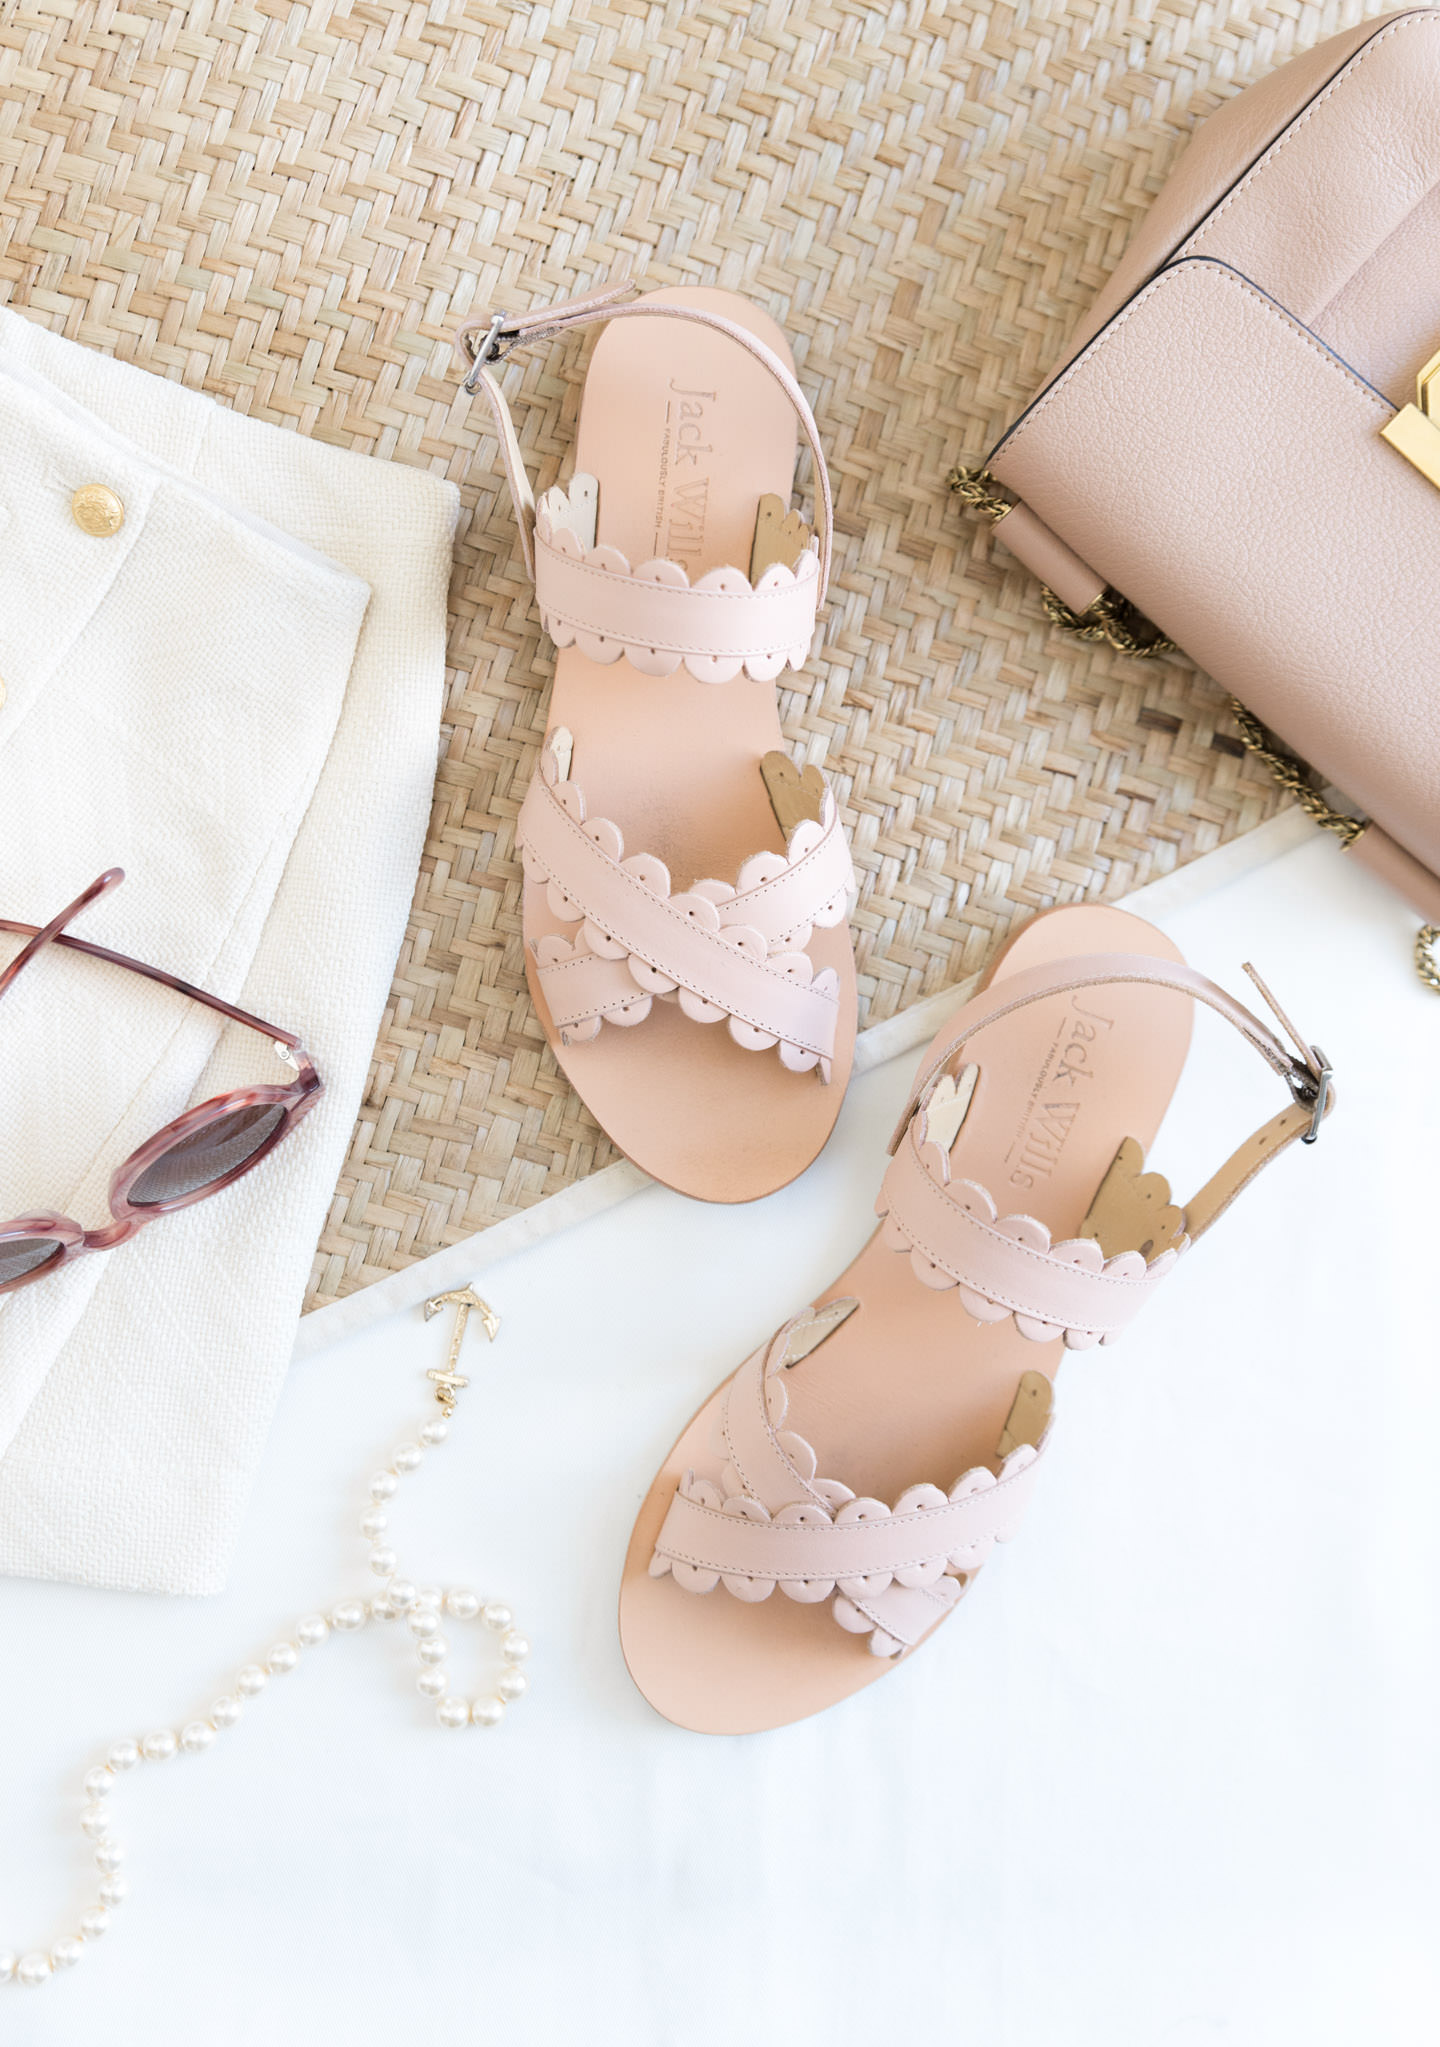 Blog-Mode-And-The-City-Lifestyle-Cinq-Petites-Choses-183-sandales-Jack-Wills